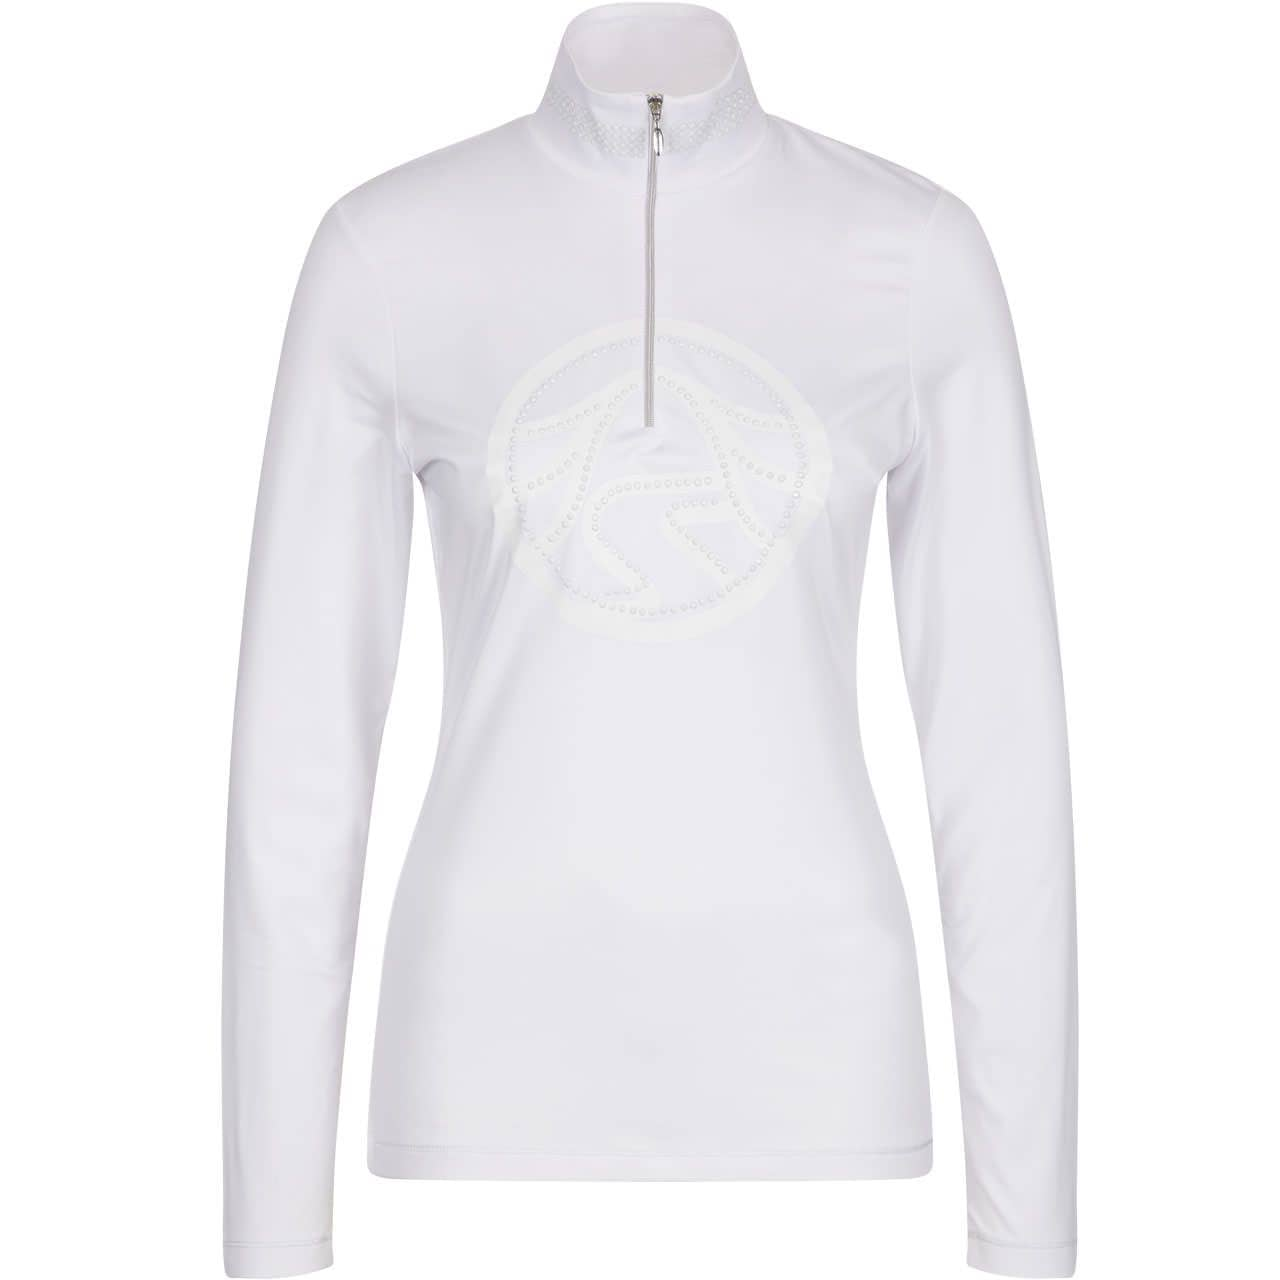 Sportalm Women First Layer 945121 optical white von Sportalm